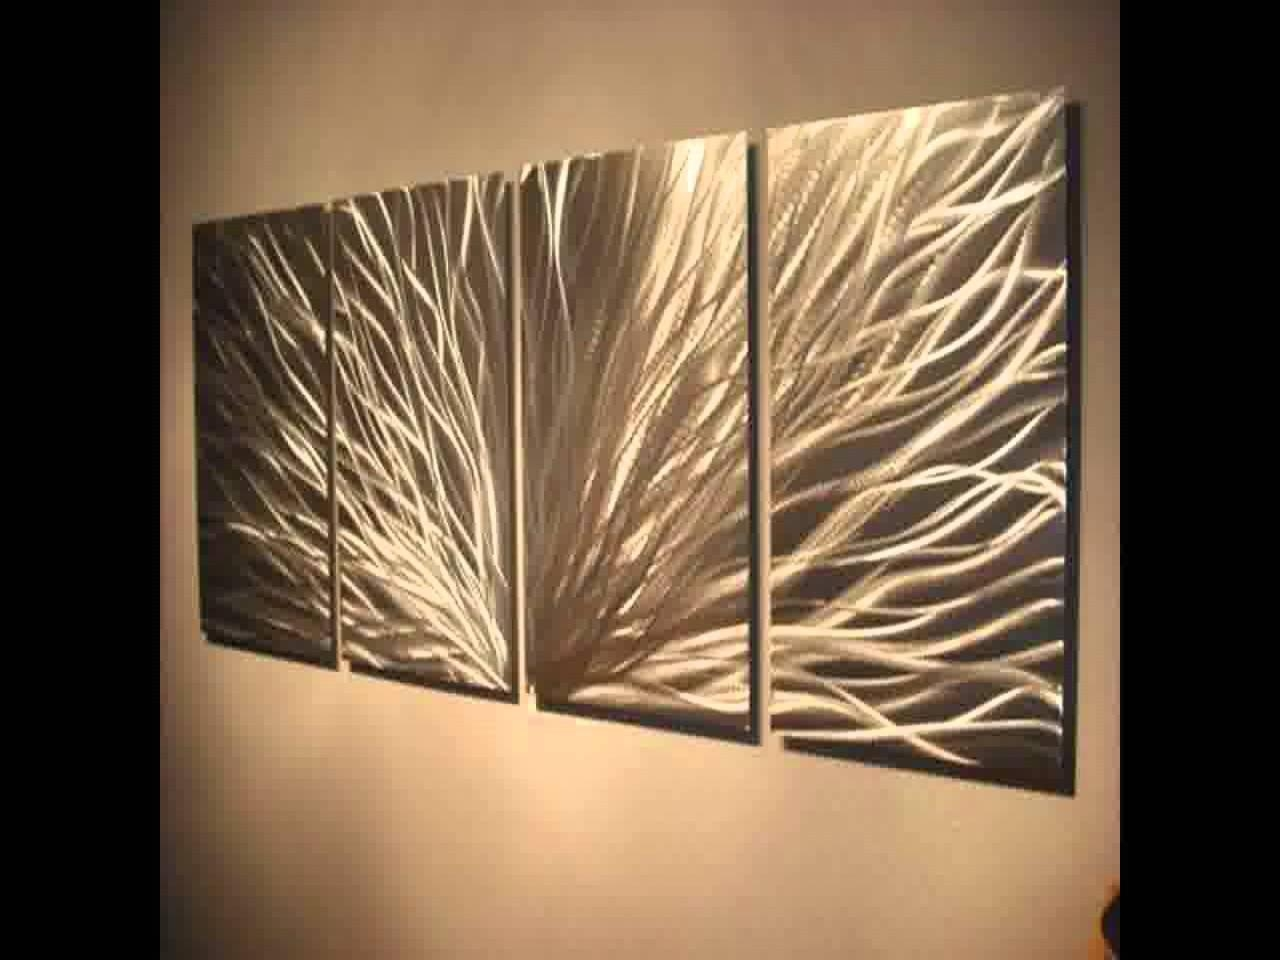 Angel Wings Wall Art Design Ideas – Youtube Intended For Angel Wings Wall Art (Image 3 of 20)